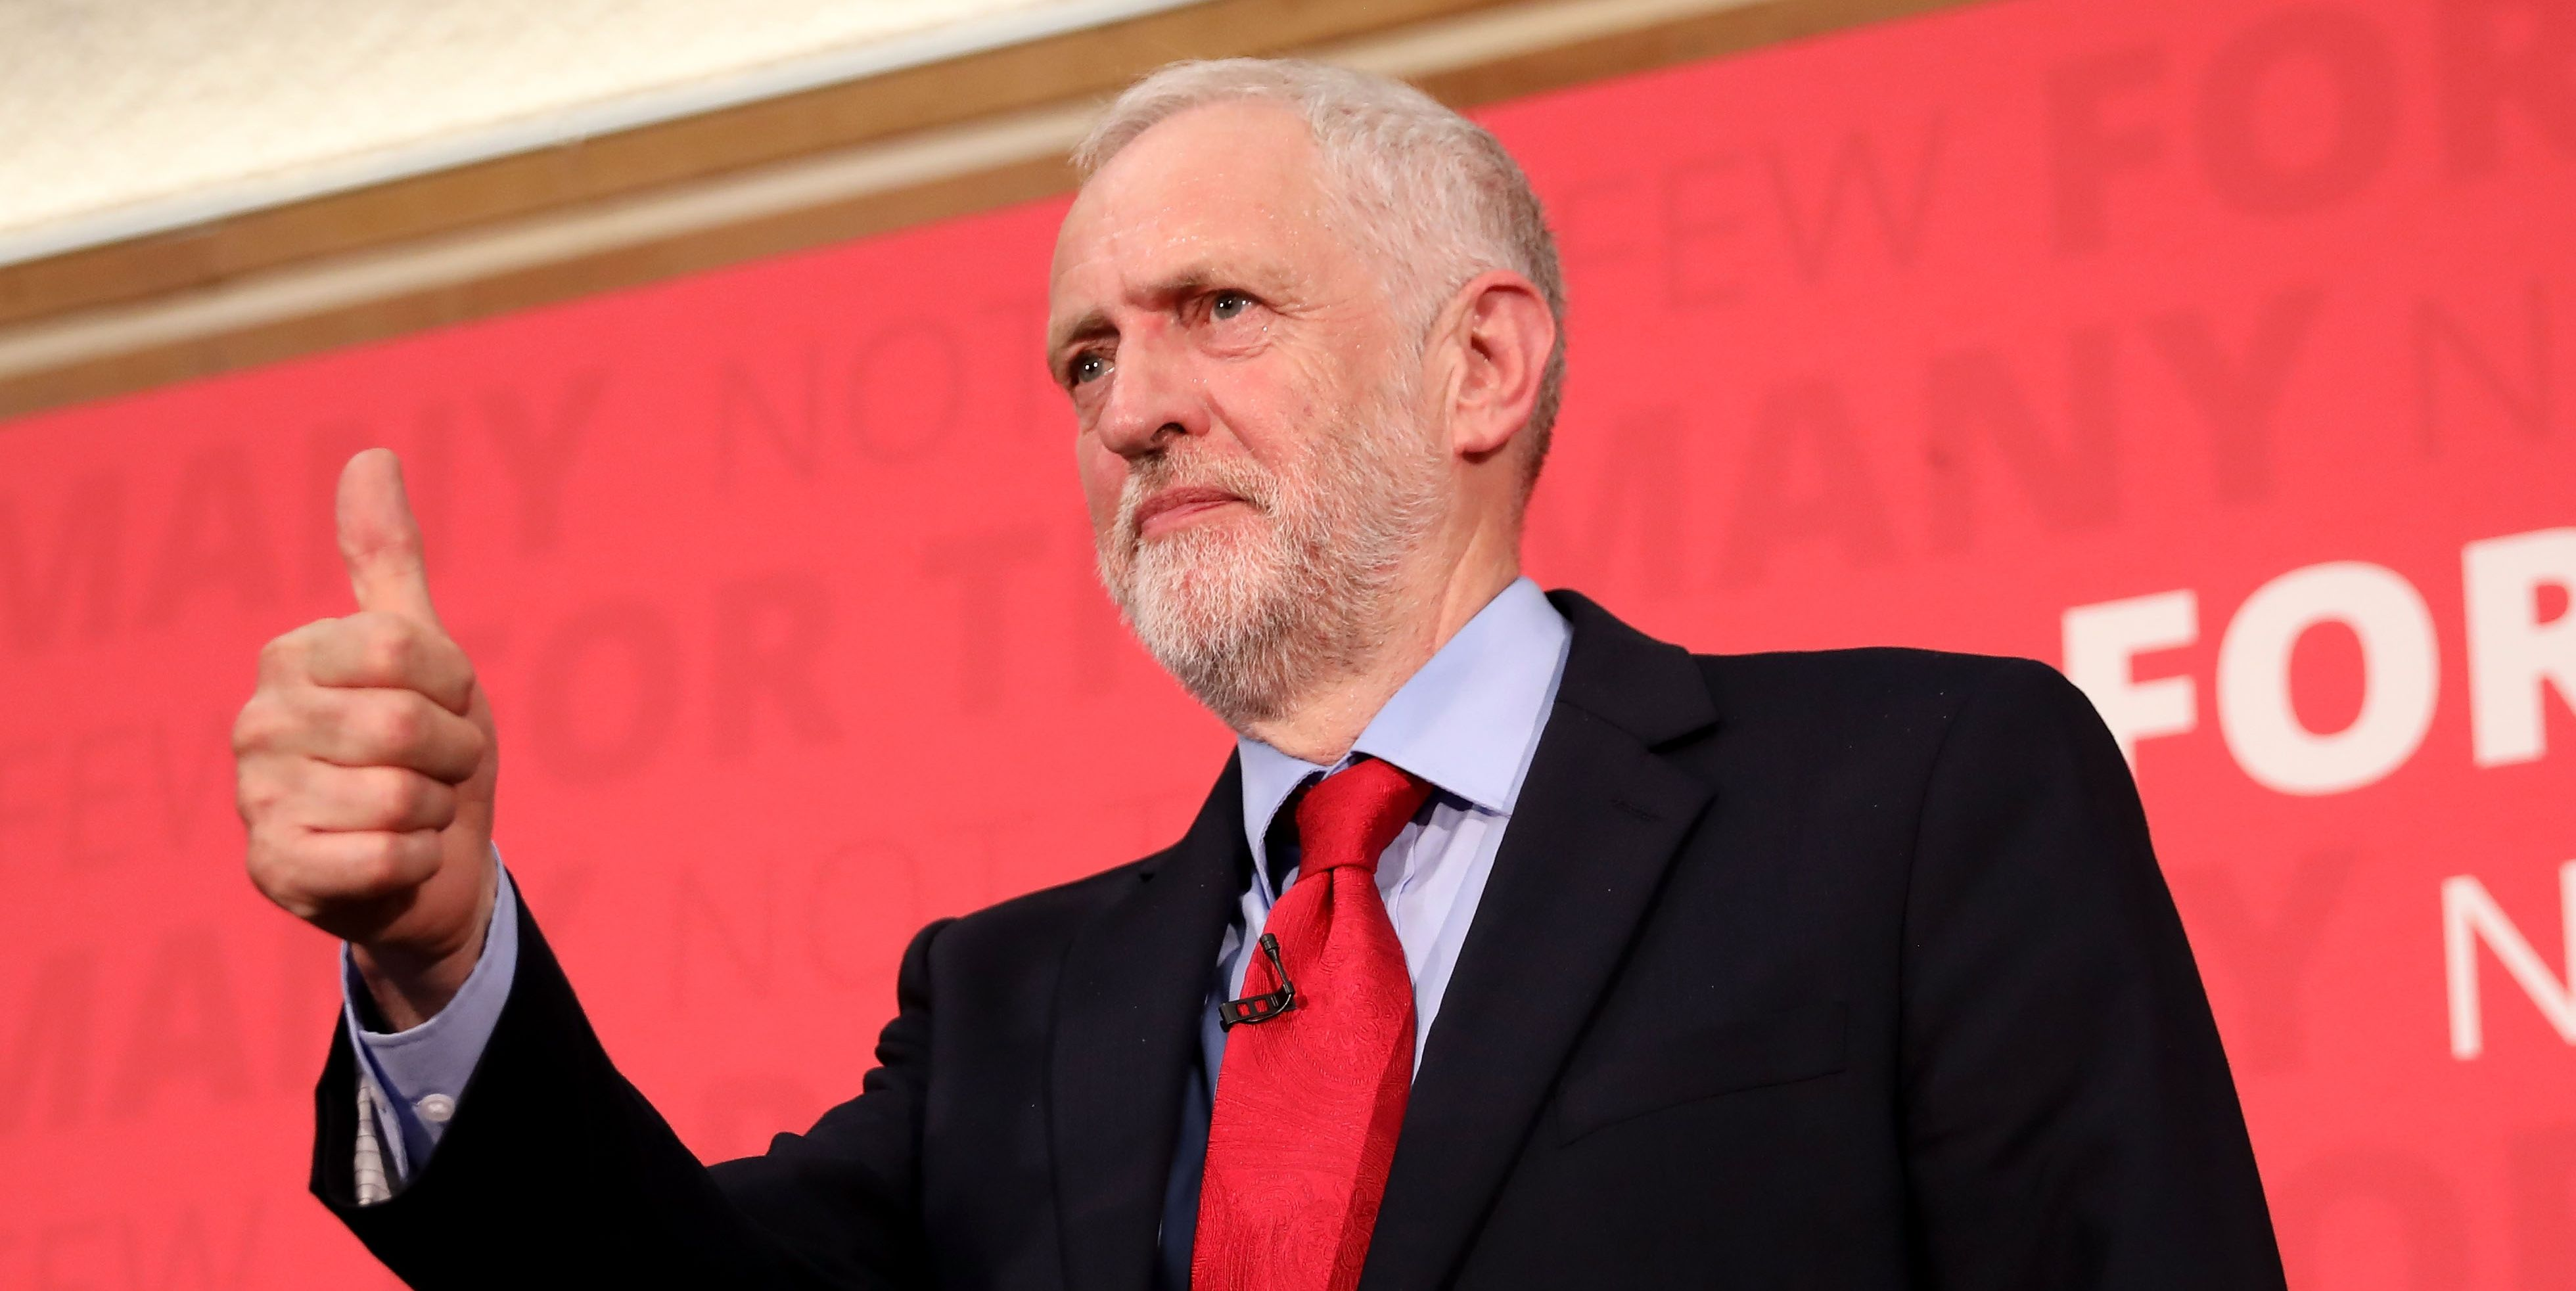 Jeremy Corbyn says he'll consider writing off graduates' existing student debt if elected